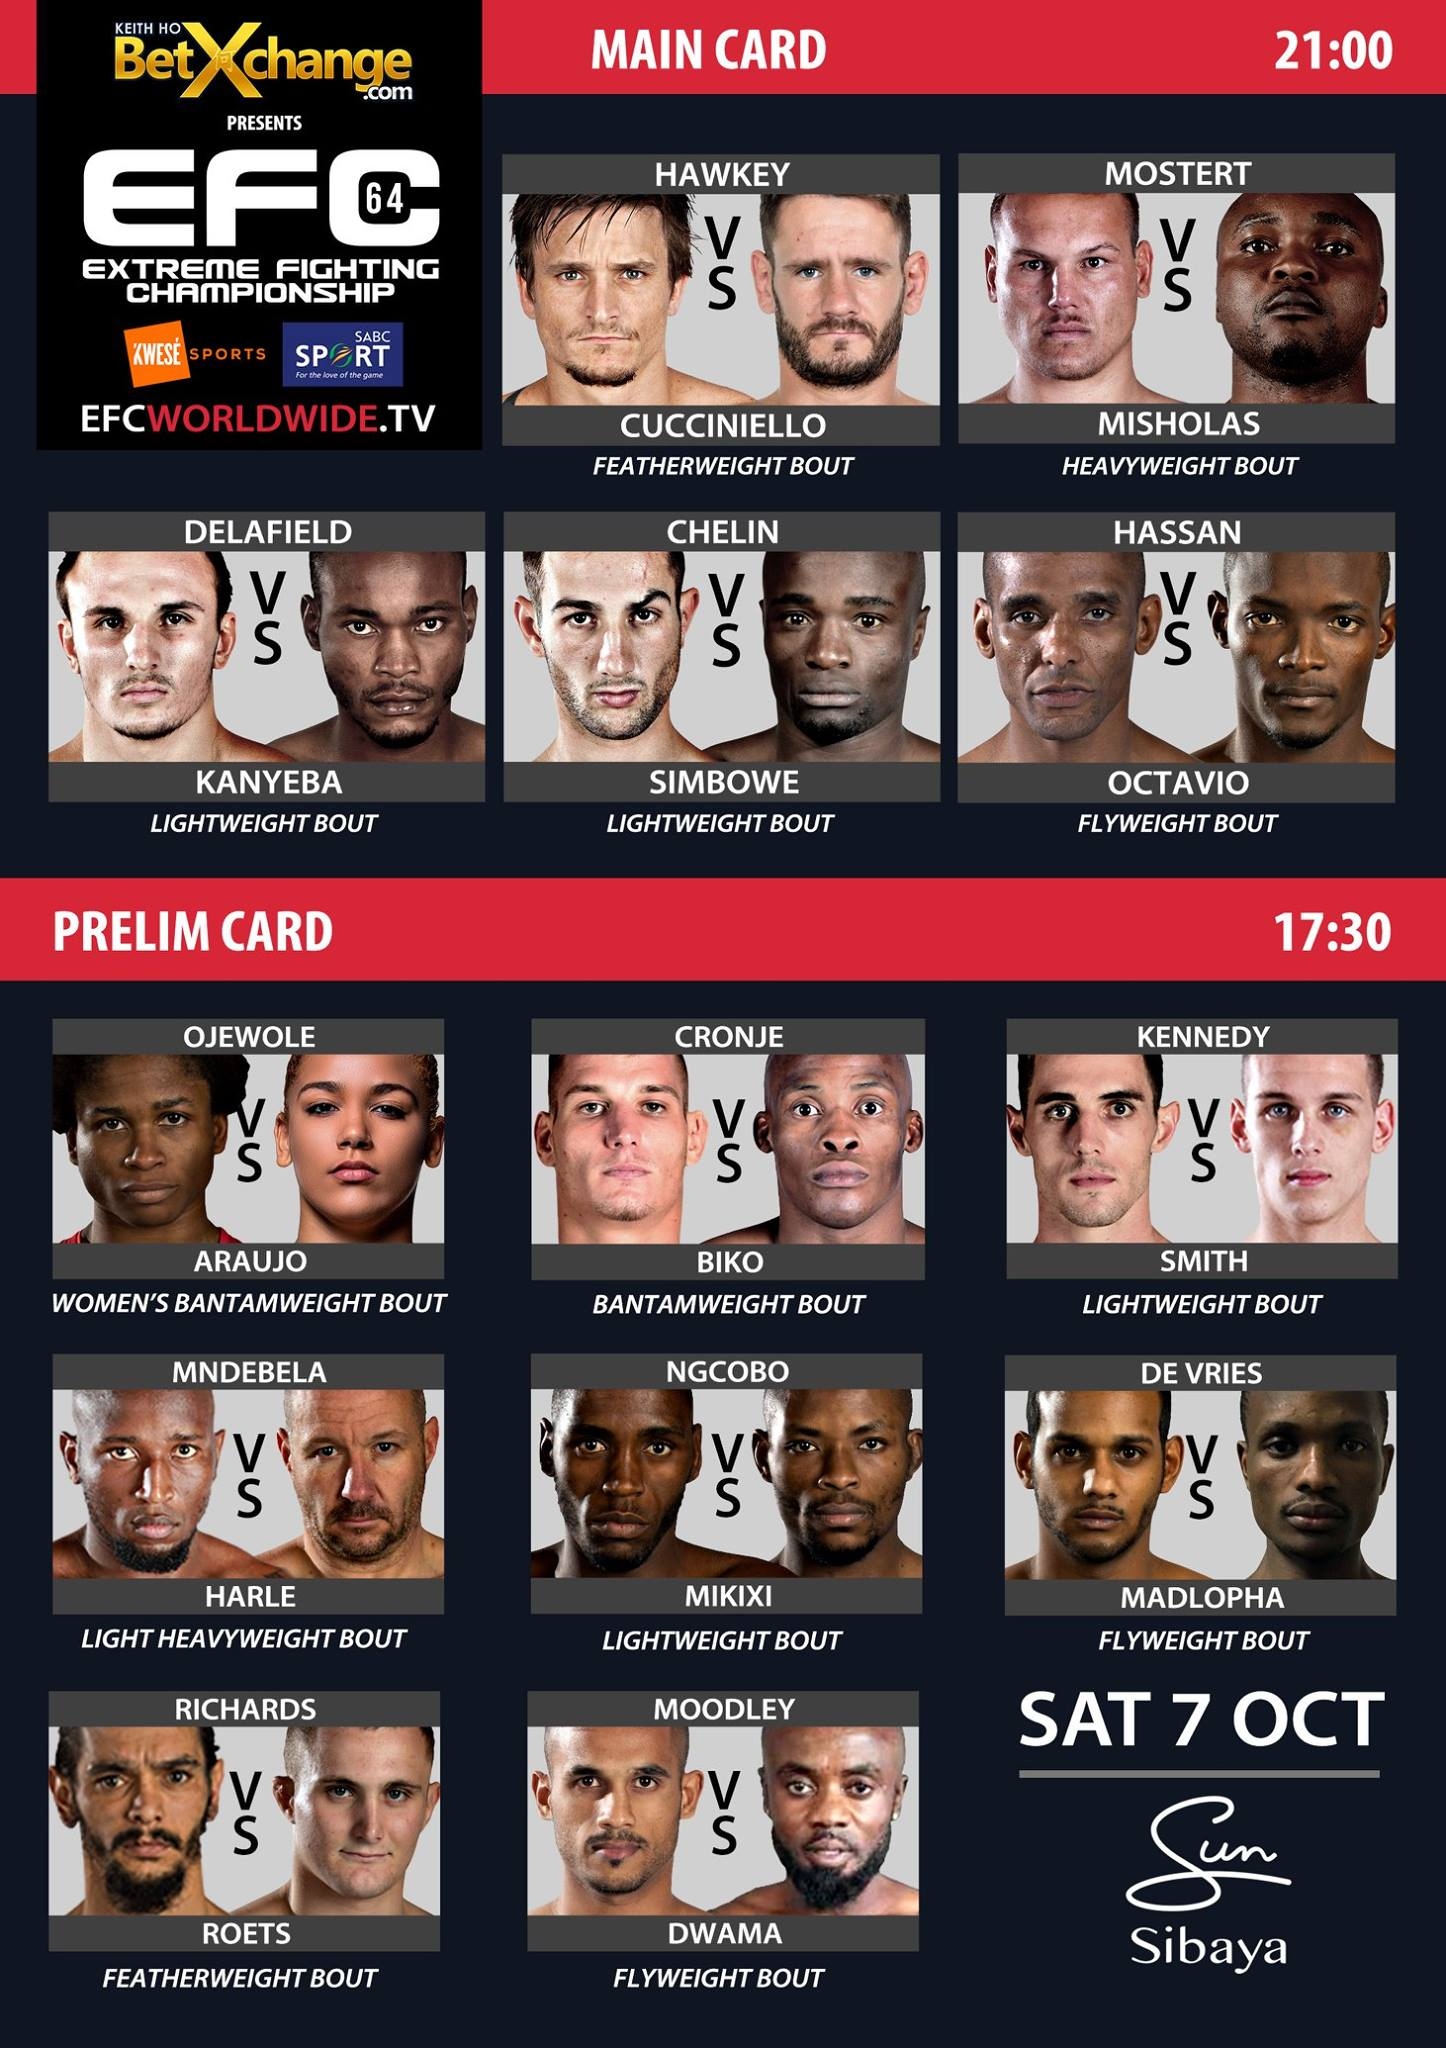 EFC 64 brings 13 exciting Mixed Martial Arts fights to Durban on 7 October 2017